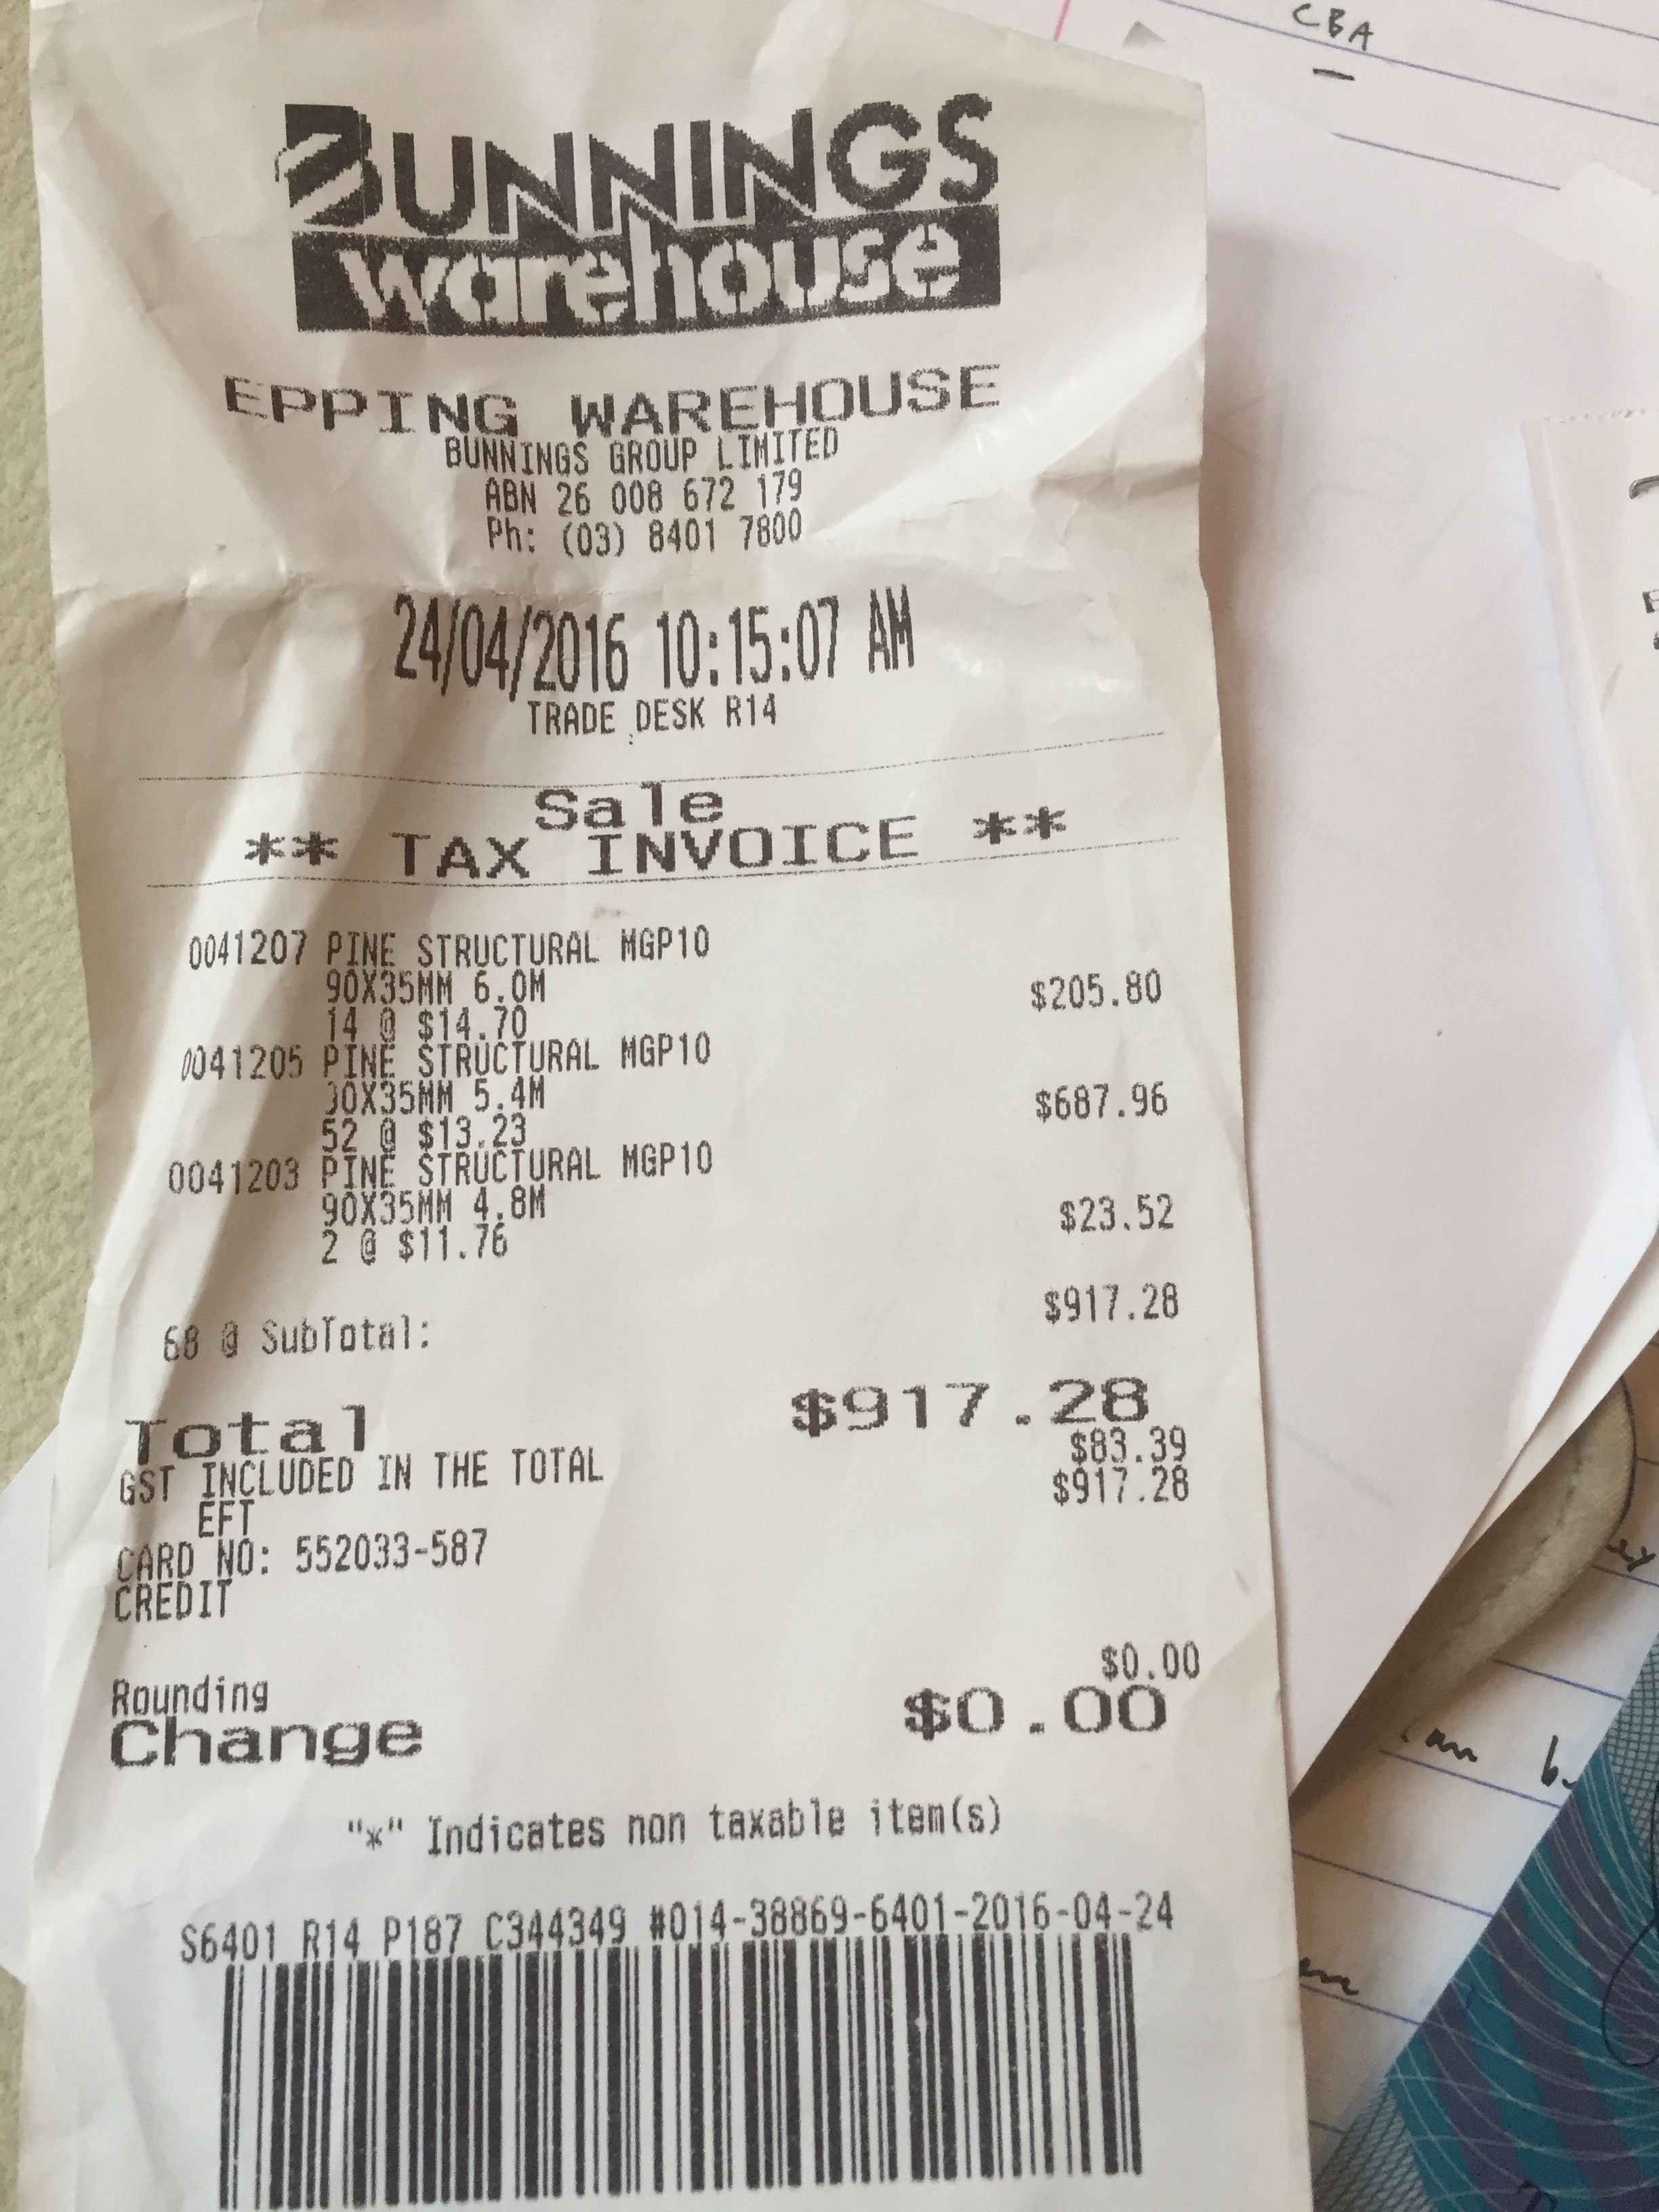 Pin By Sapple On Receipts 10 Things Receipts Personalized Items